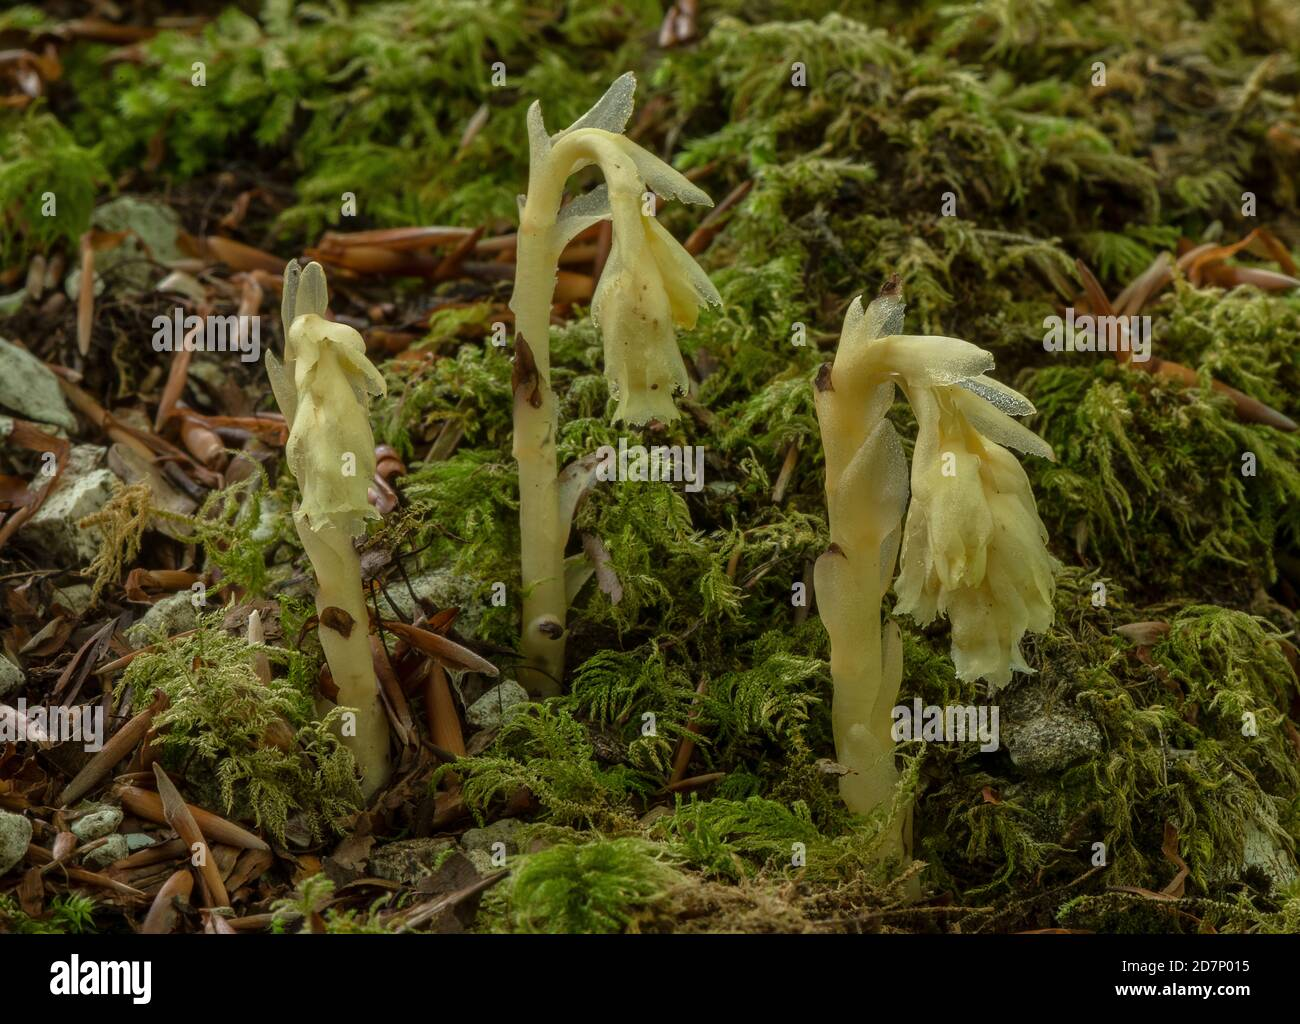 Yellow bird's-nest, Hypopitys monotropa, in flower in beech woodland, plantation; Dorset. Stock Photo